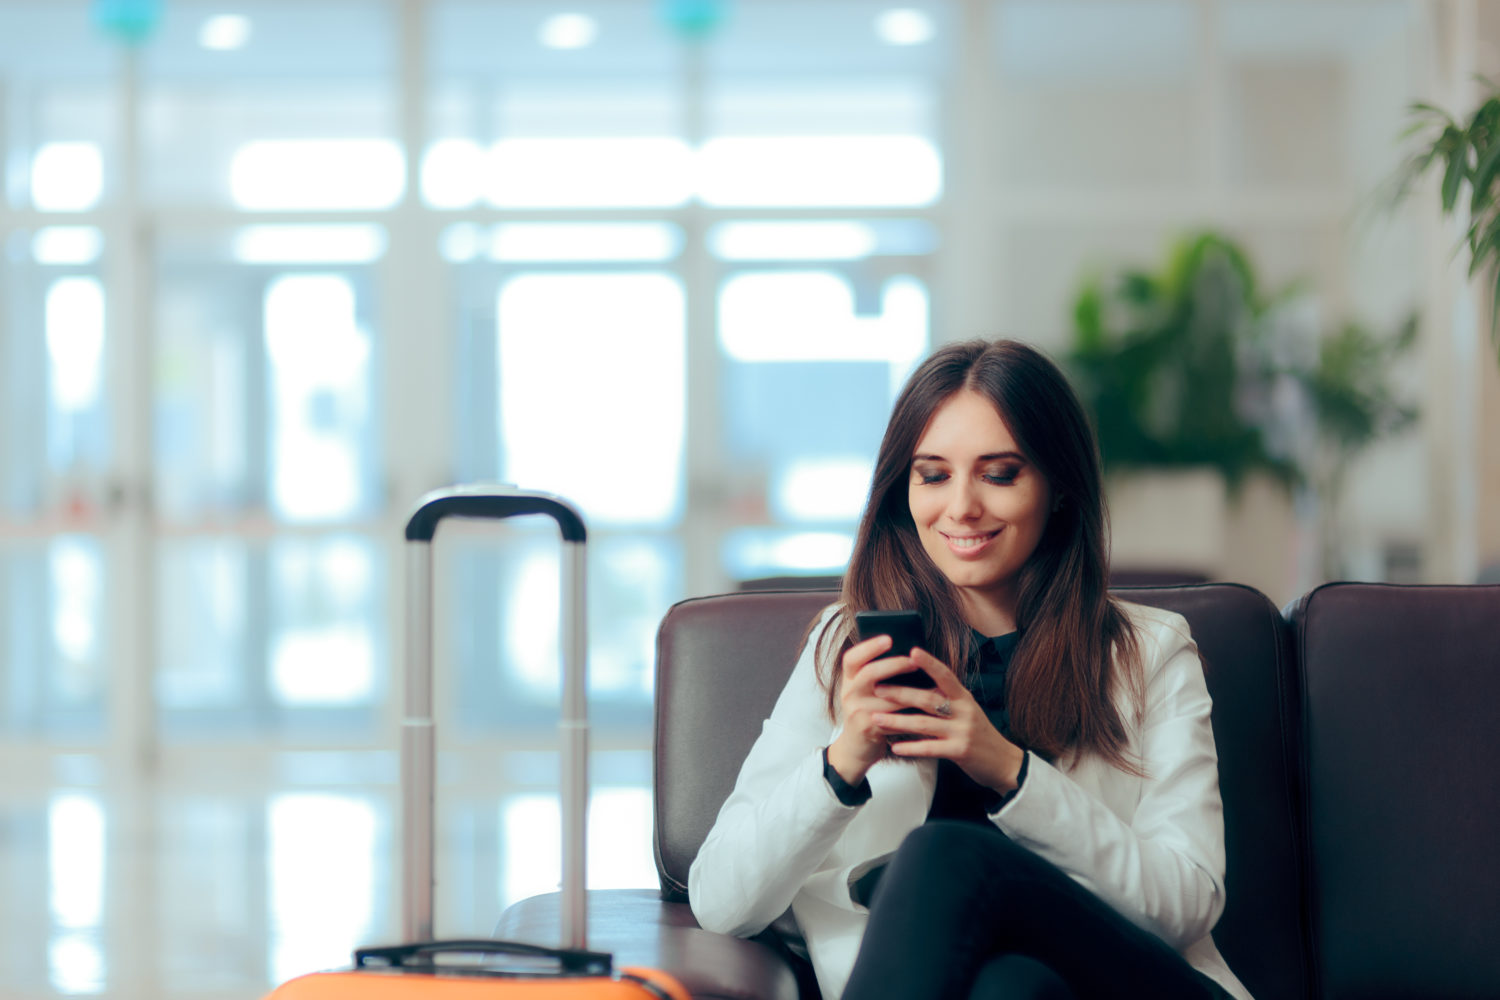 Woman sitting reading her phone in an airport terminal